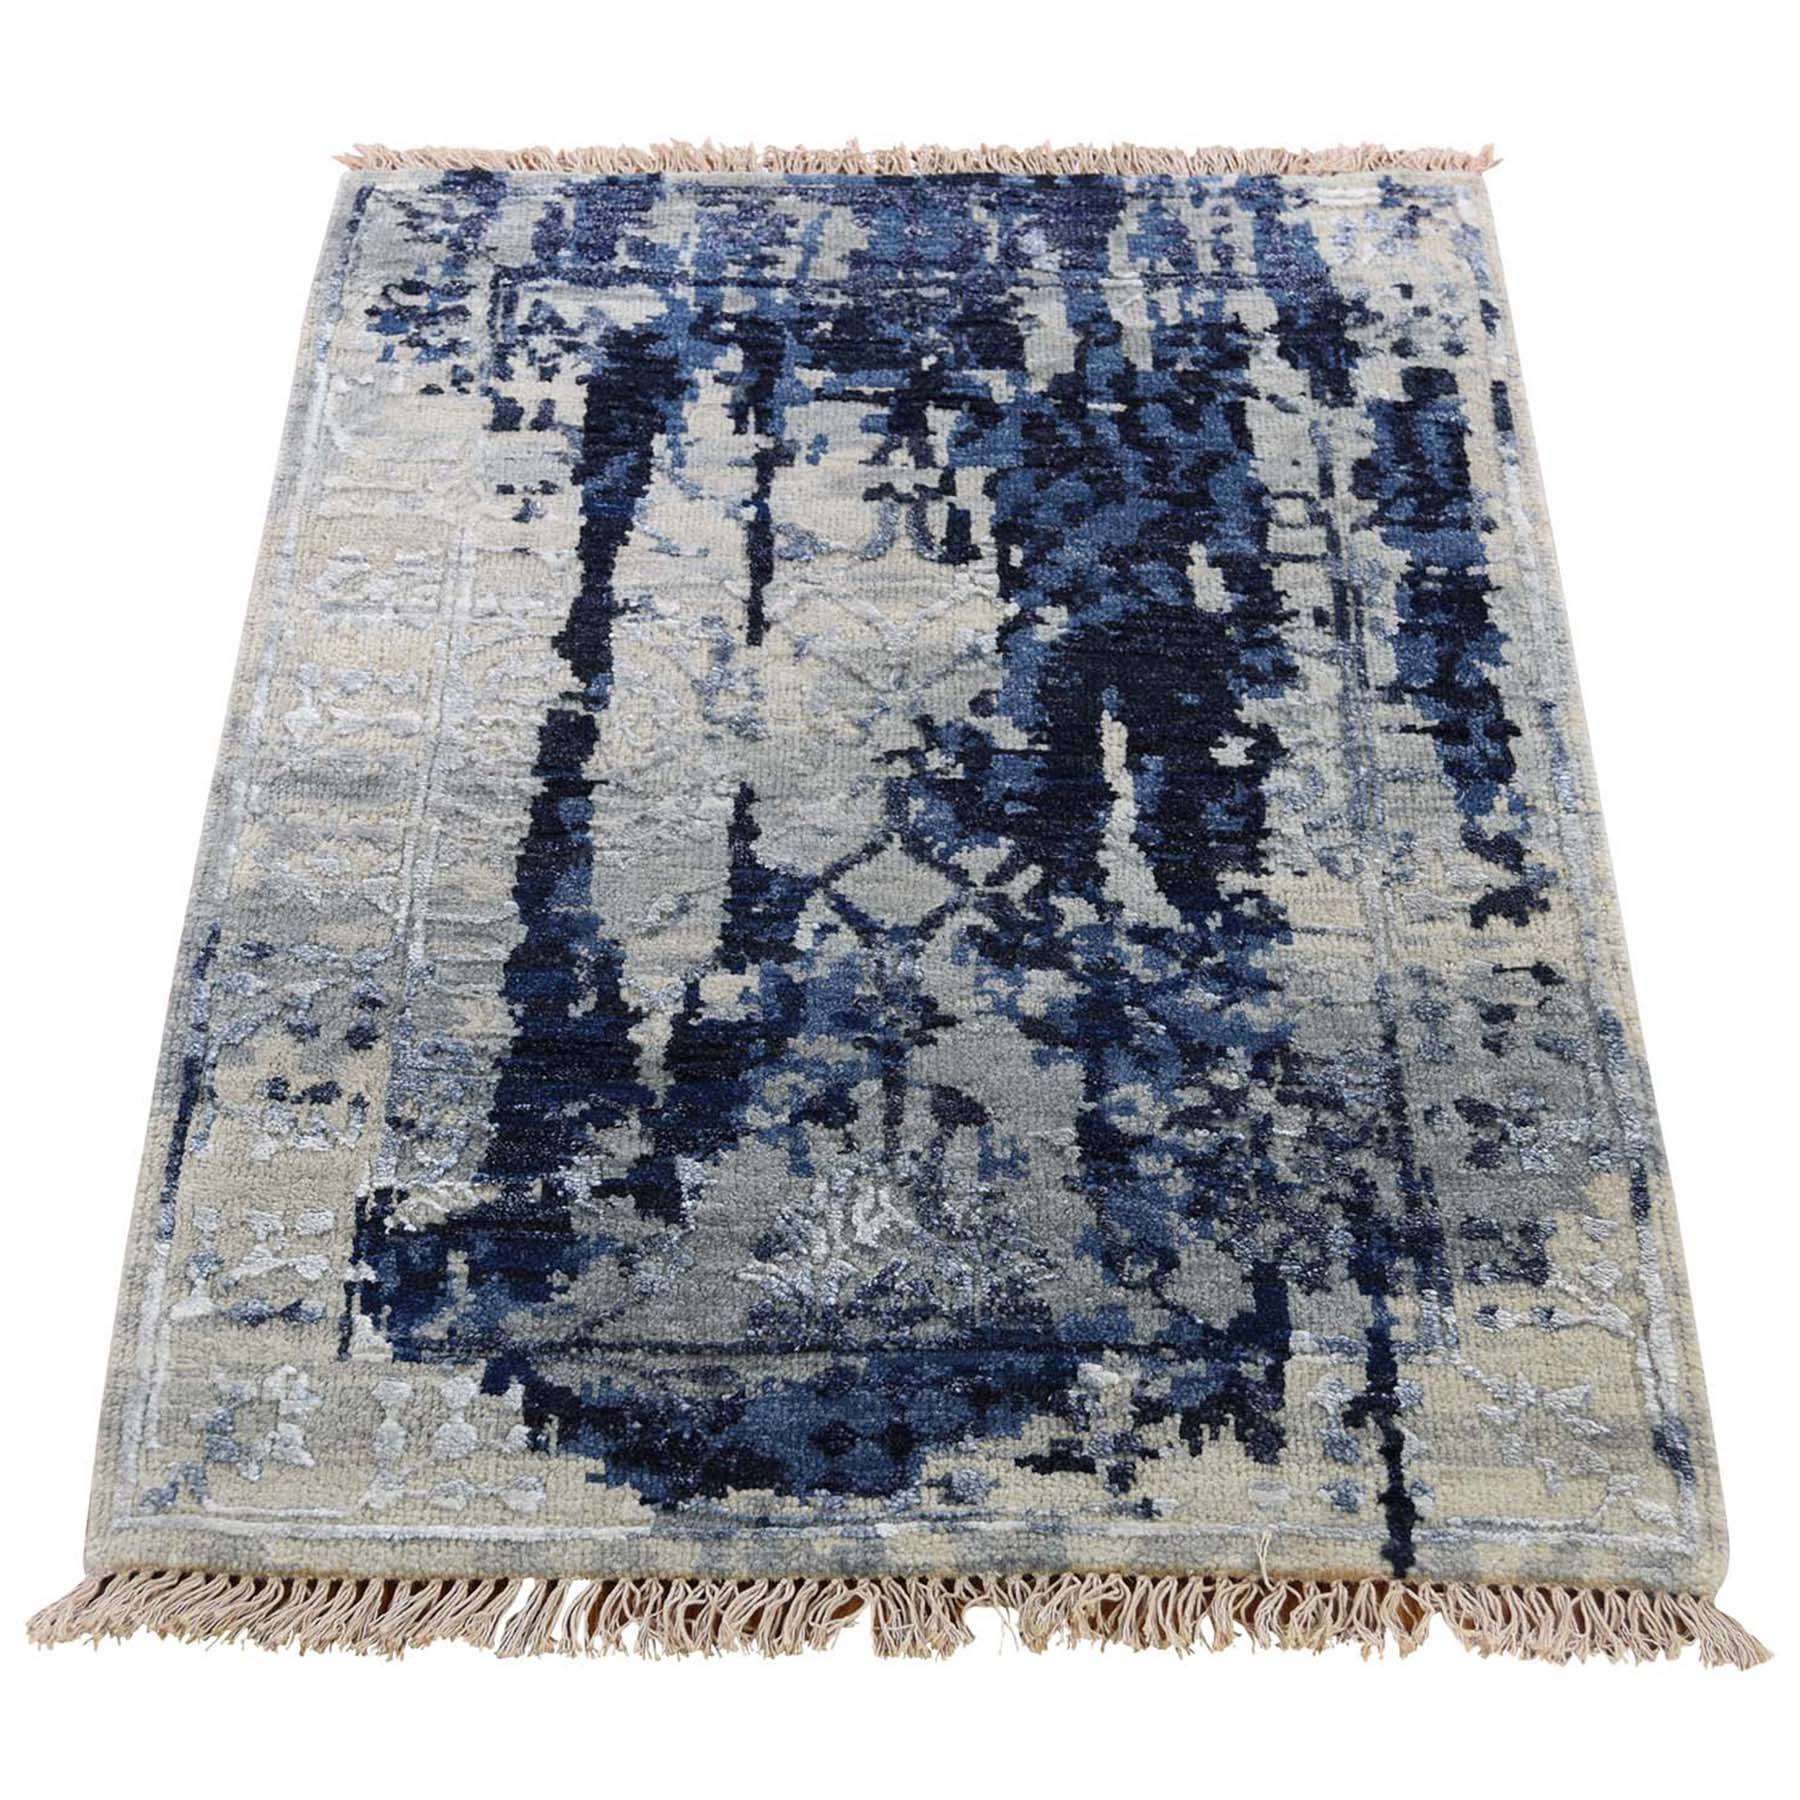 2'X3' Wool And Silk Shibori Design Tone On Tone Hand-Knotted Oriental Rug moad6bad